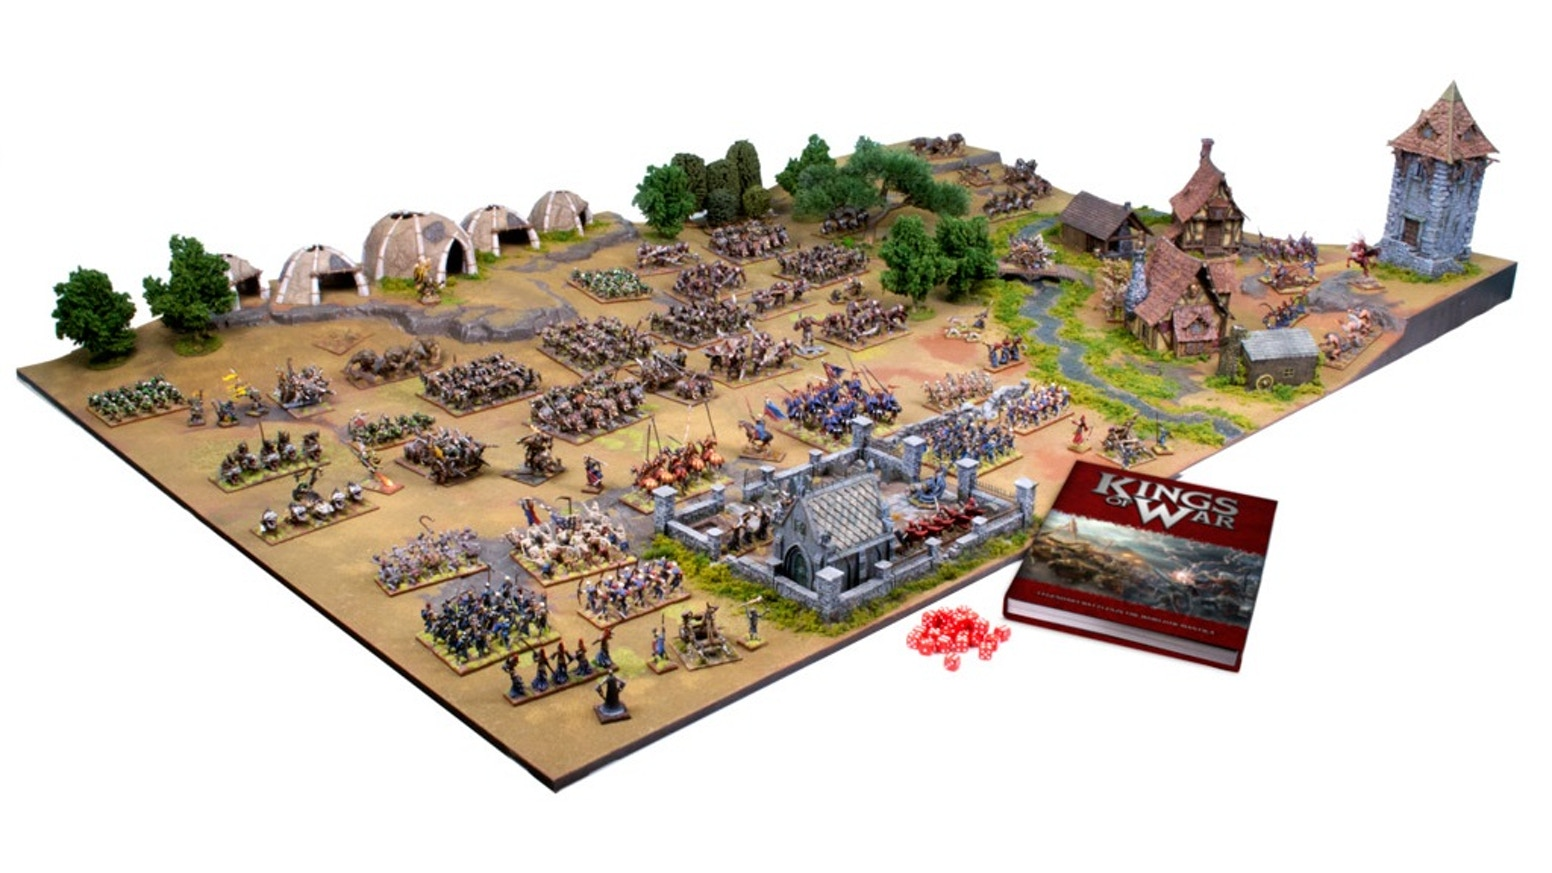 Kings of War is the 2-player fantasy miniatures game where epic armies clash on tabletop!